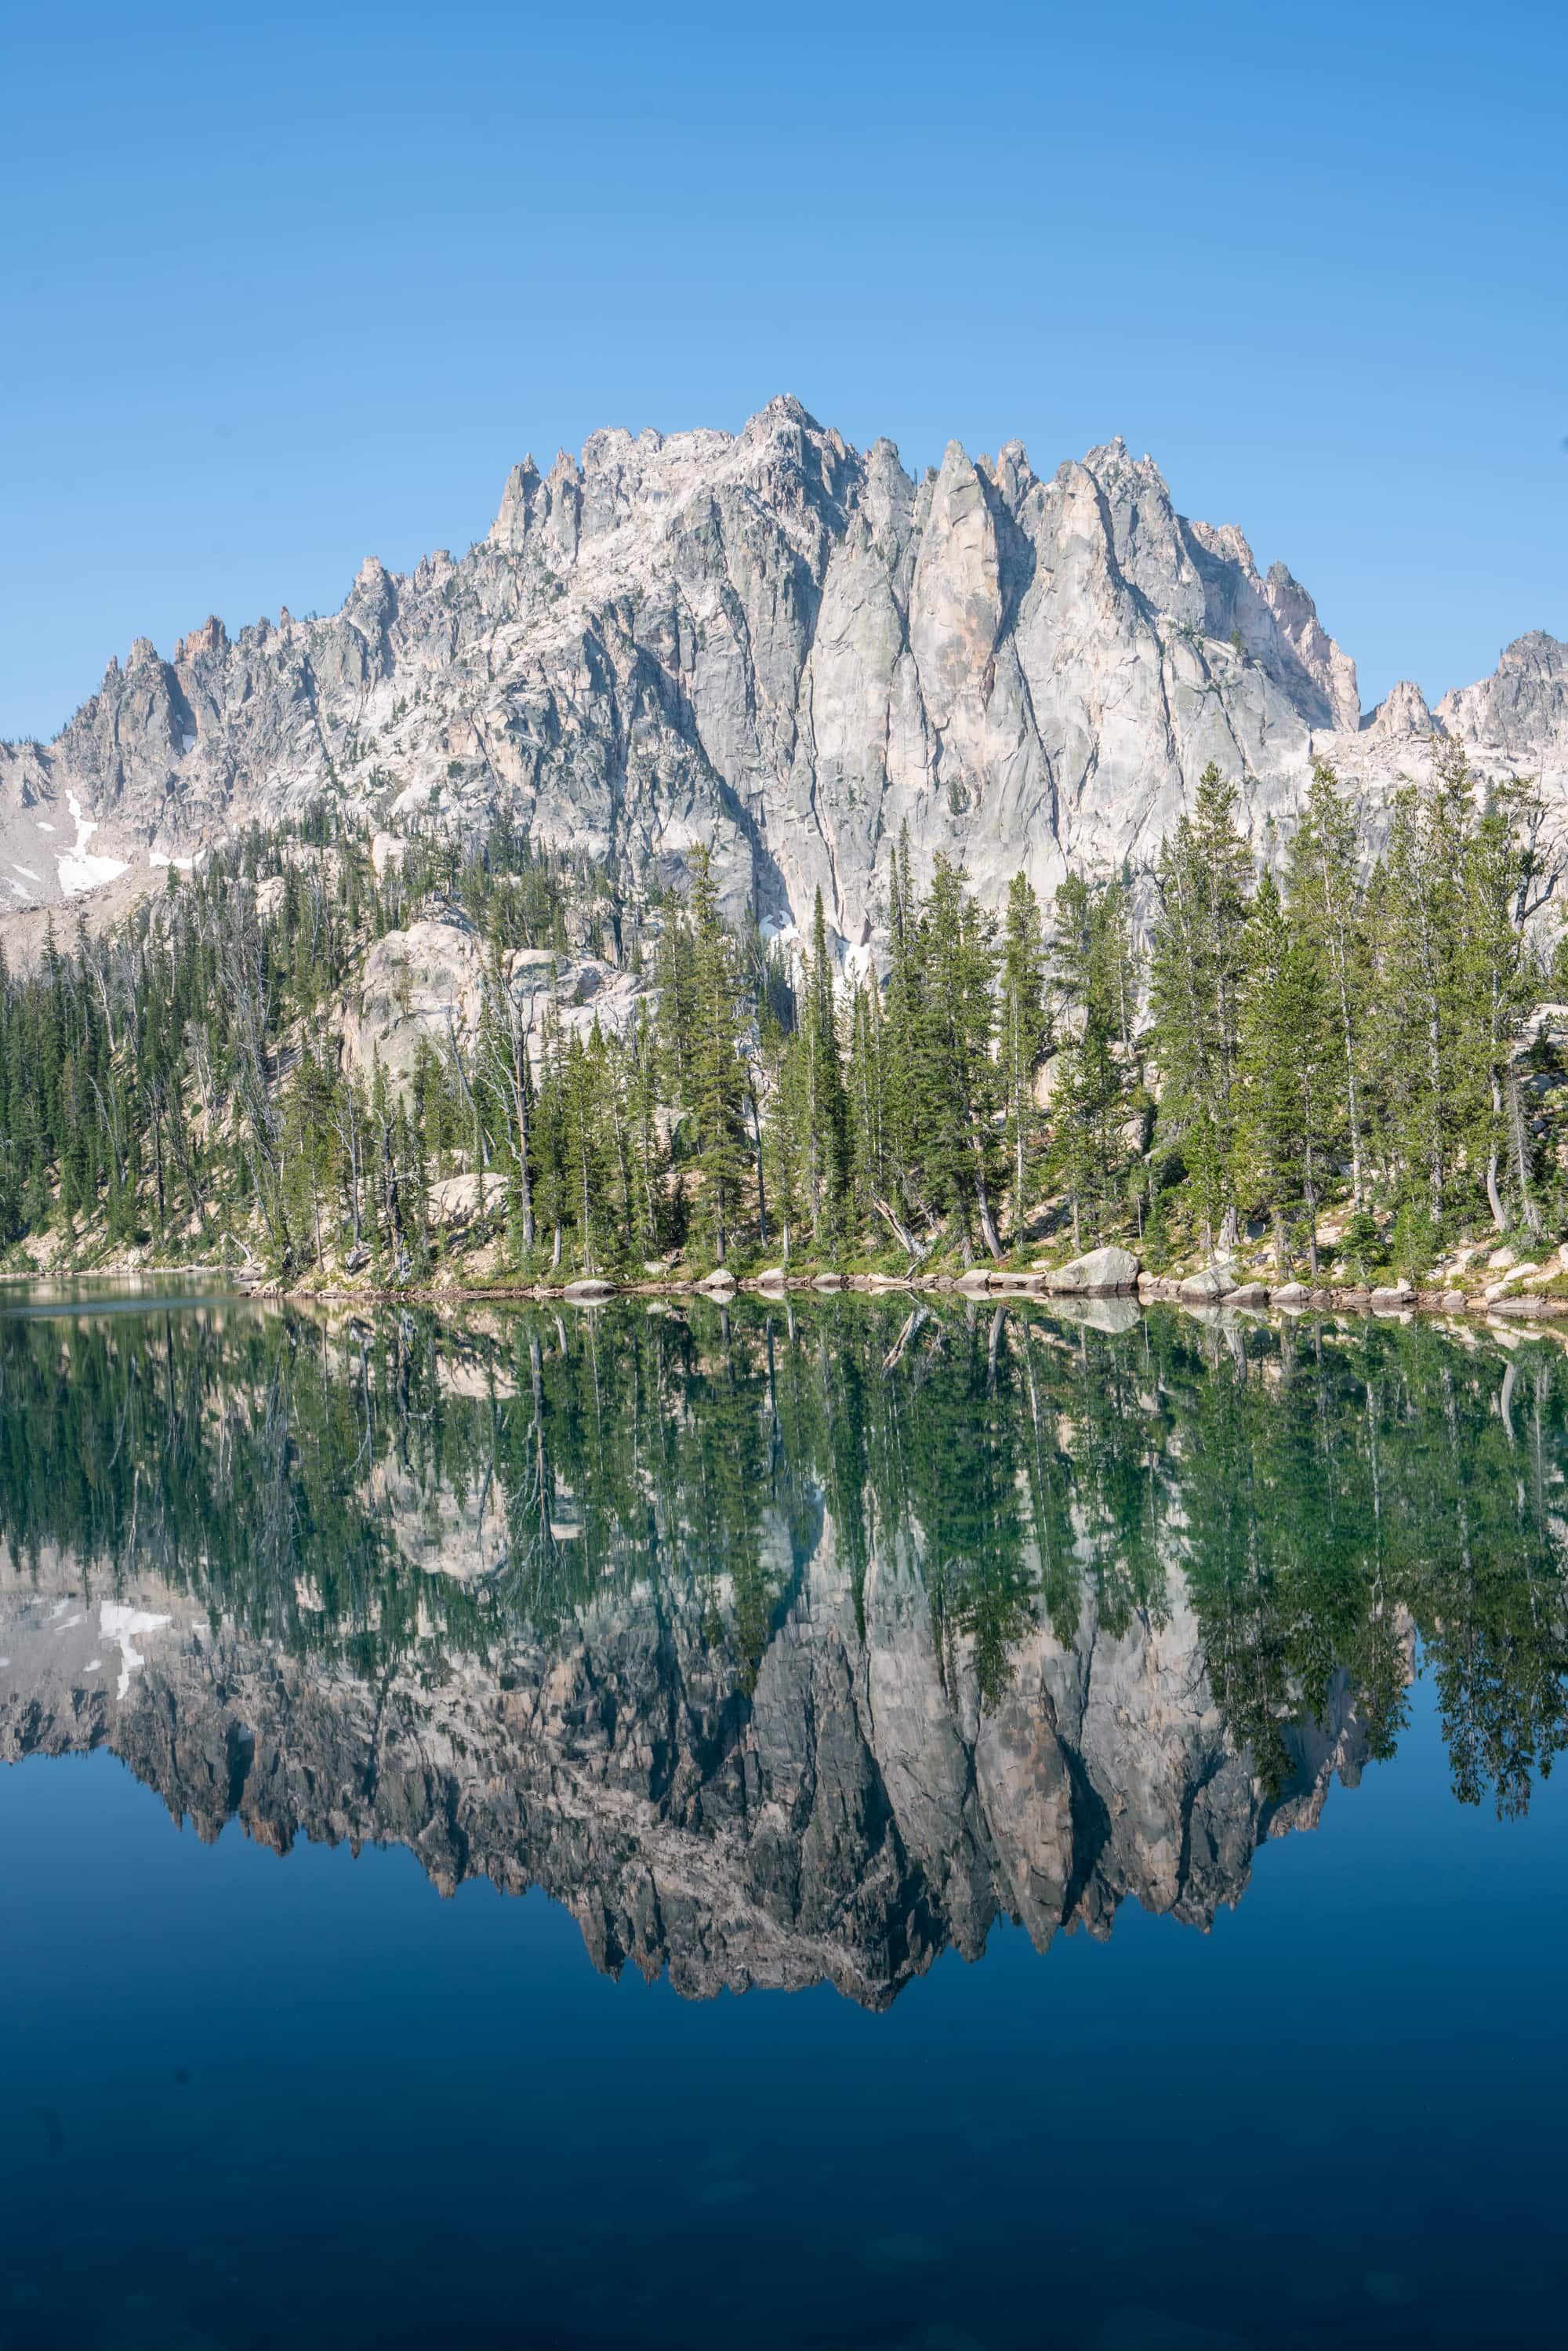 Baron Lakes is one of those iconic hikes in Idaho's Sawtooth Mountains with several high alpine lakes to choose from and wide open views of the jagged Sawtooth Range.  Get my hiking, trail, and campsite tips with this detailed Baron Lakes backpacking guide.